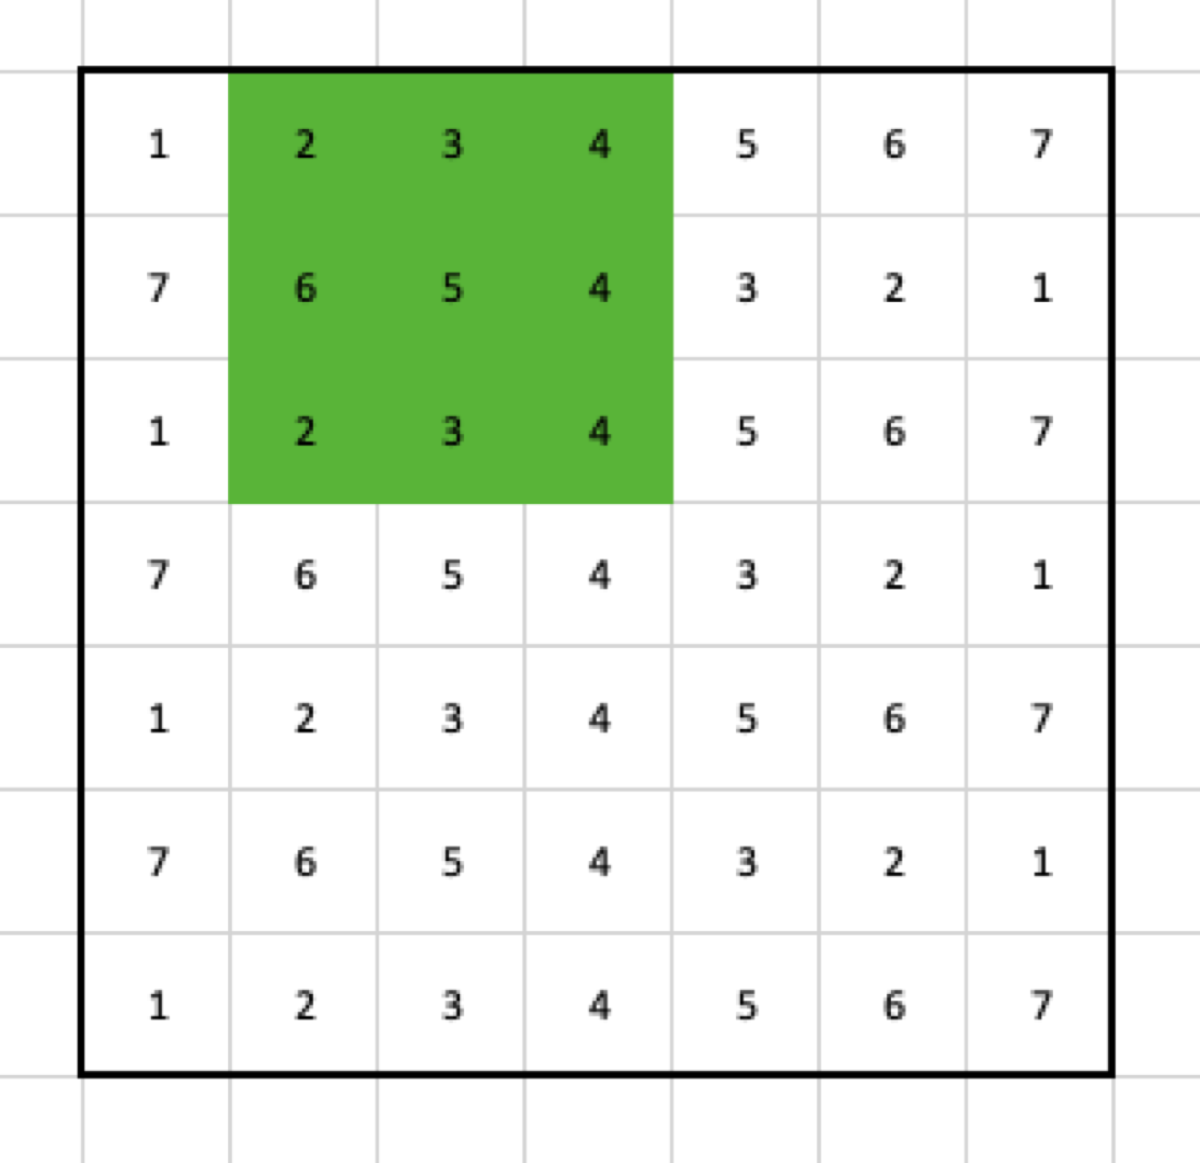 Cells selected by the 3x3 max pooling filter in the second step